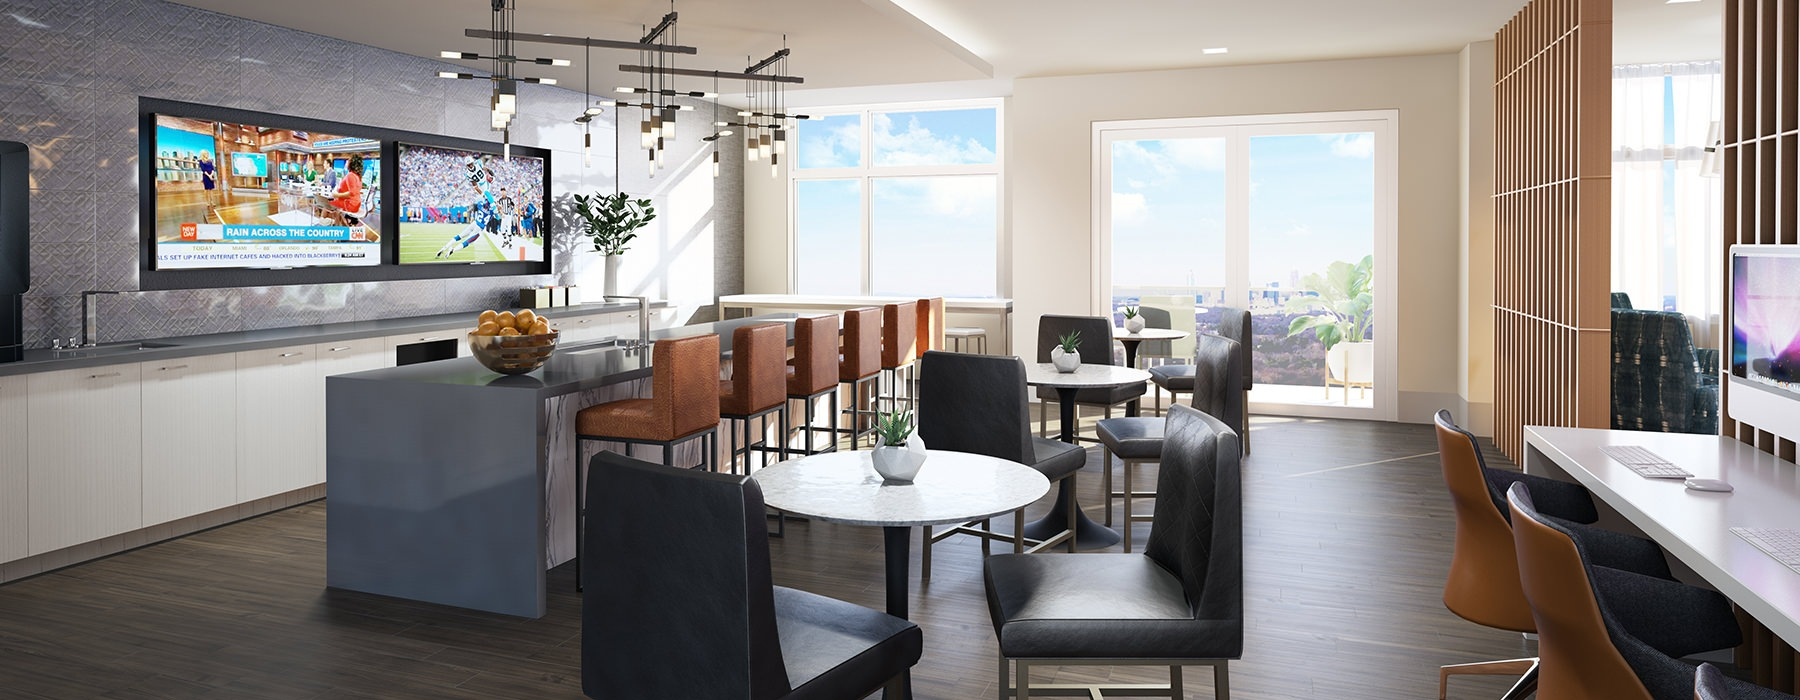 Spacious resident lounge with bar, large TVs and plenty of natural lighting